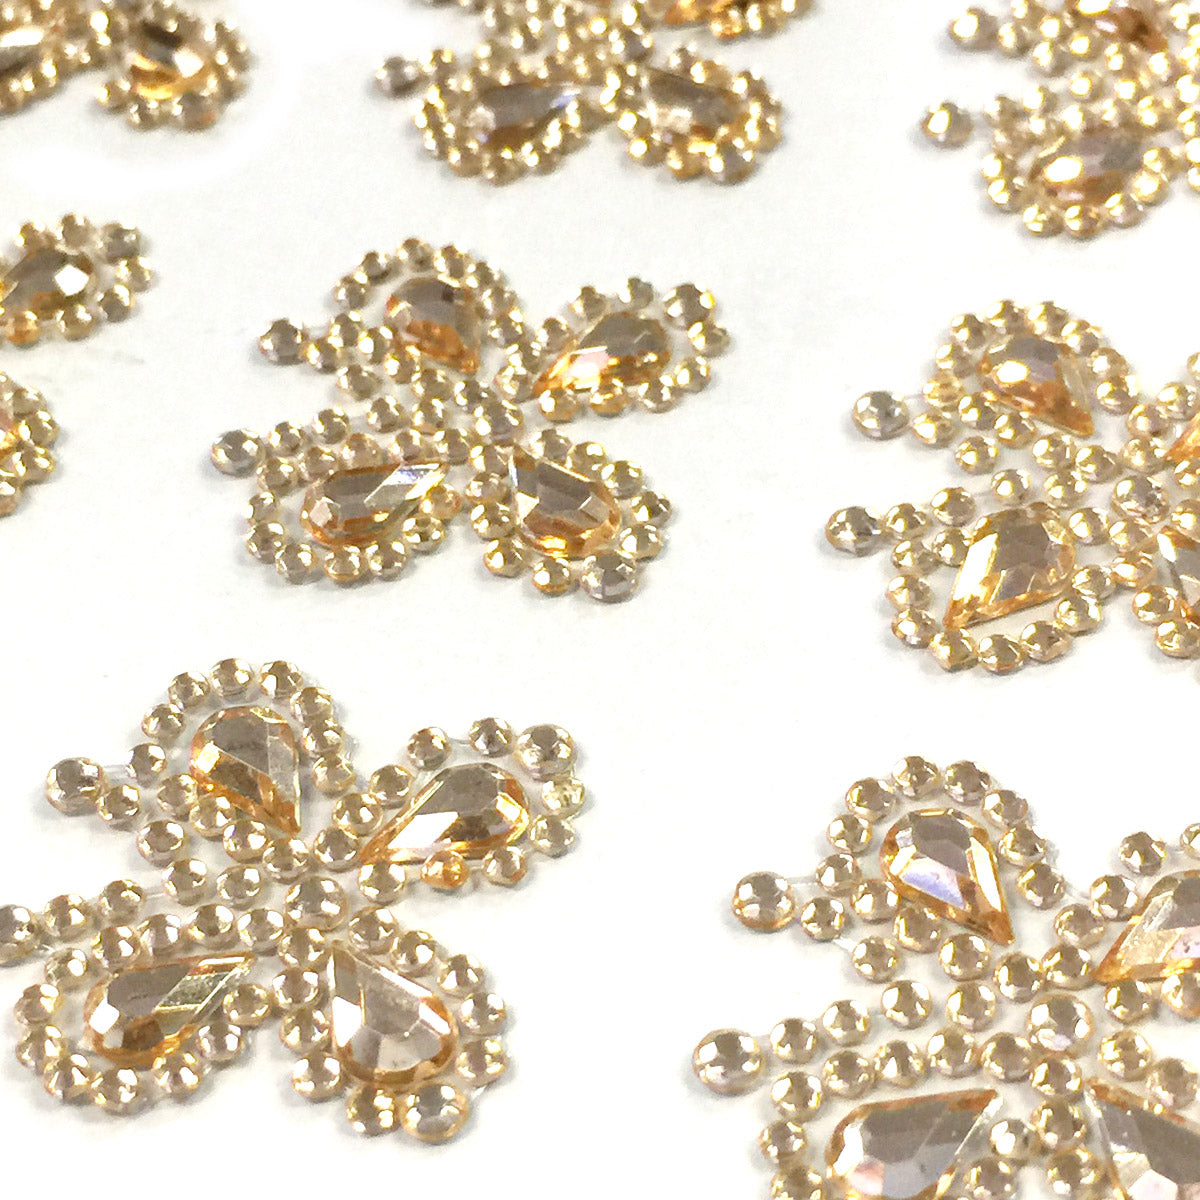 Wrapables Butterfly Crystal Adhesive Rhinestones Gems